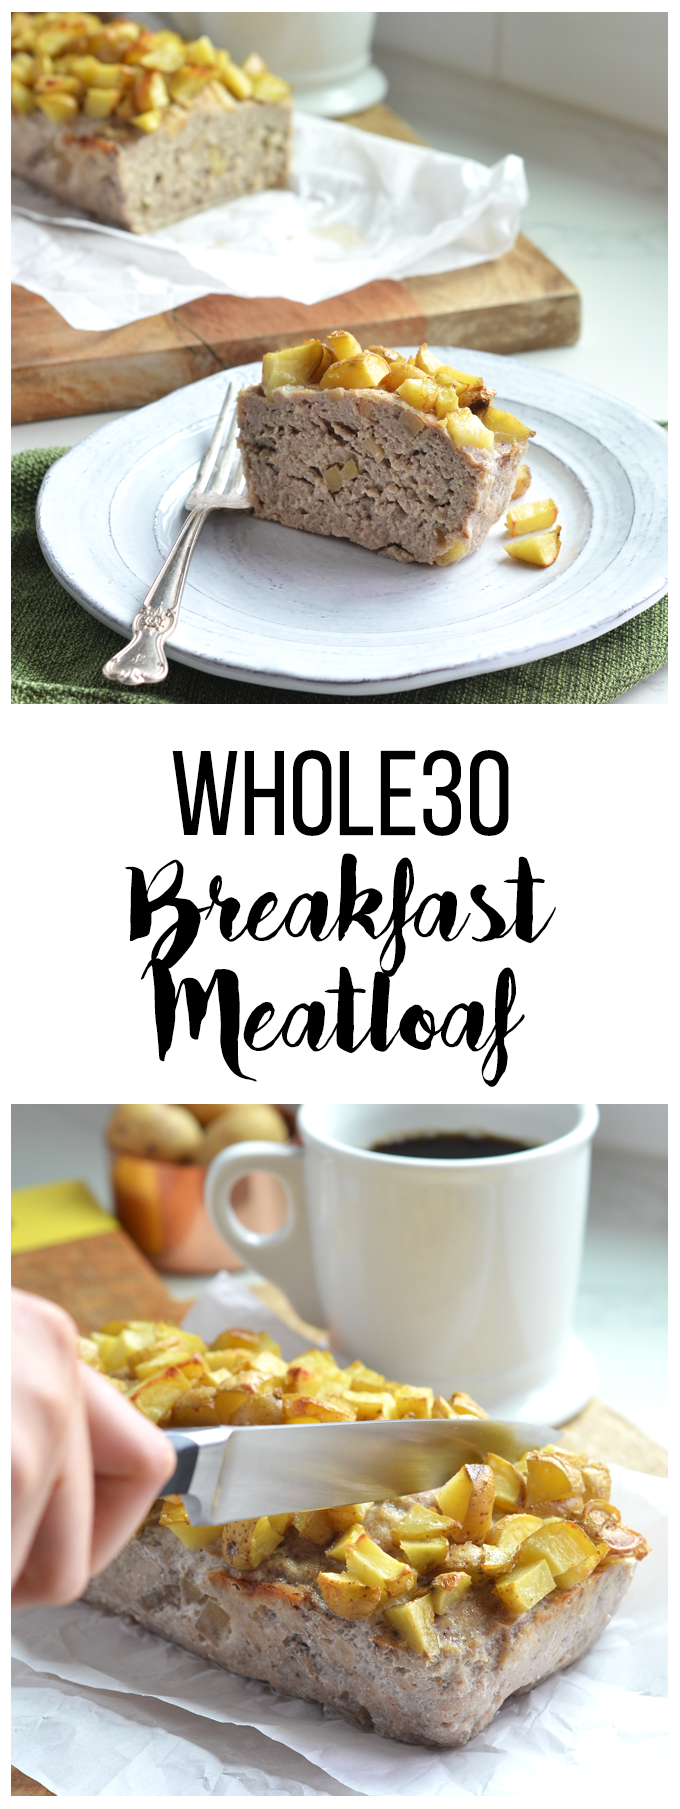 This Whole30 Breakfast Meatloaf is the perfect protein to prep for a week of Whole30 success!